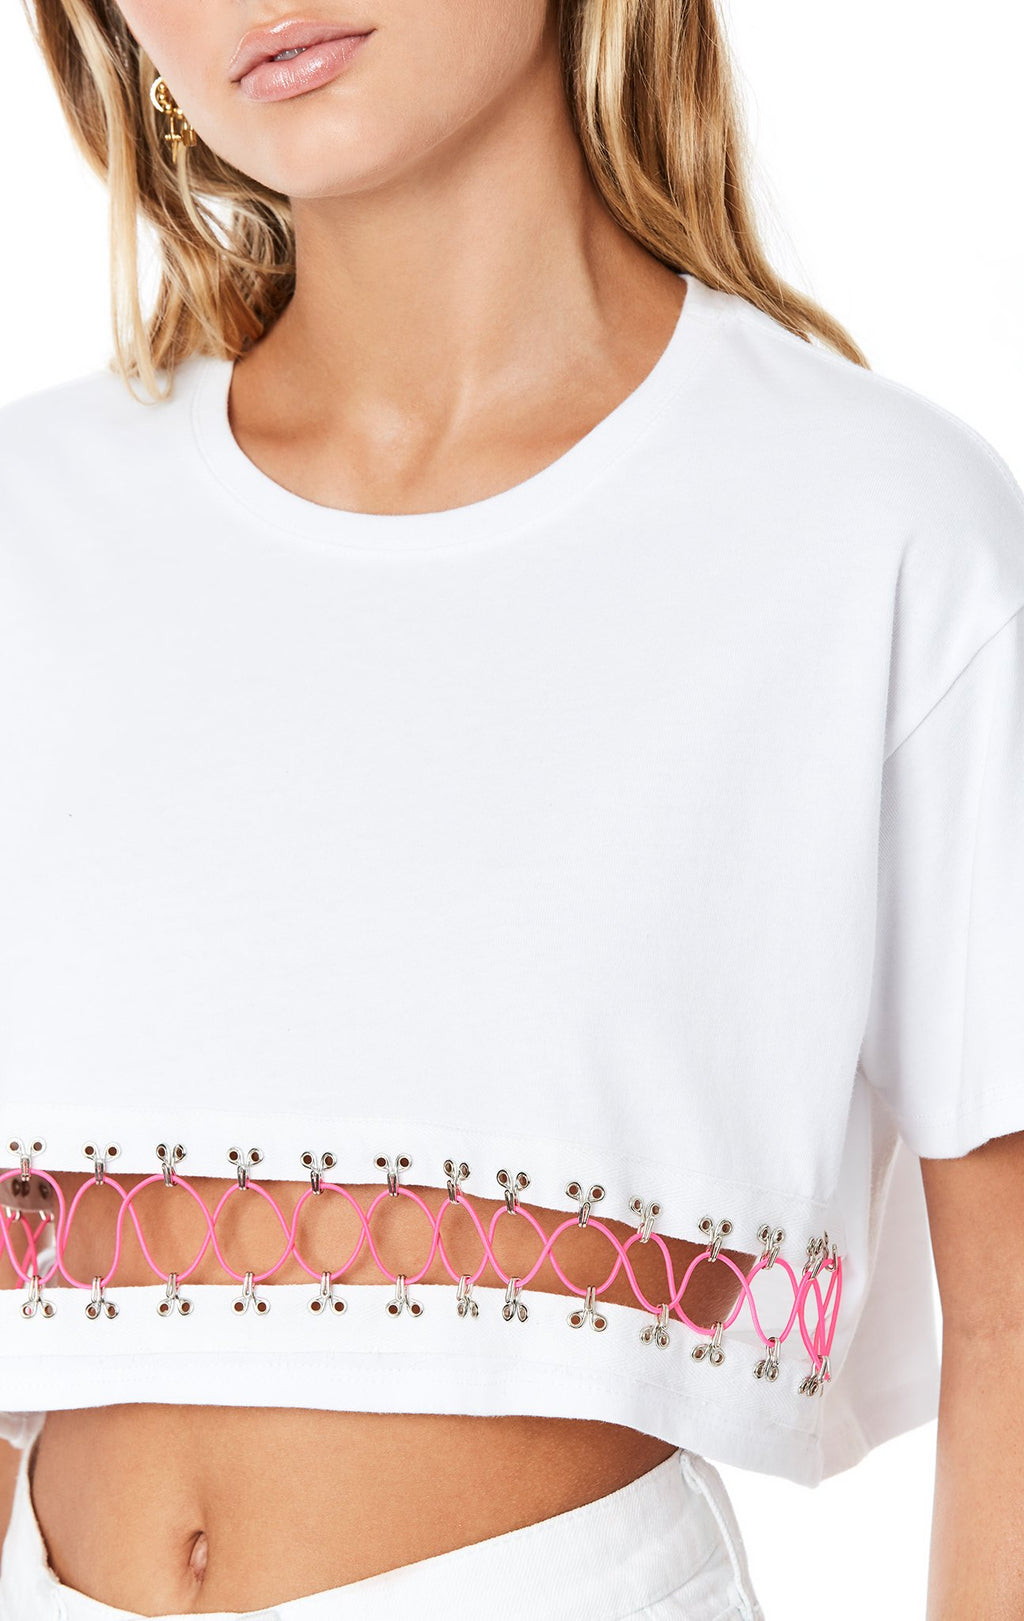 Emma & Sam: CRISS CROSS BUNGEE CROP TEE - NOVELTY TEE